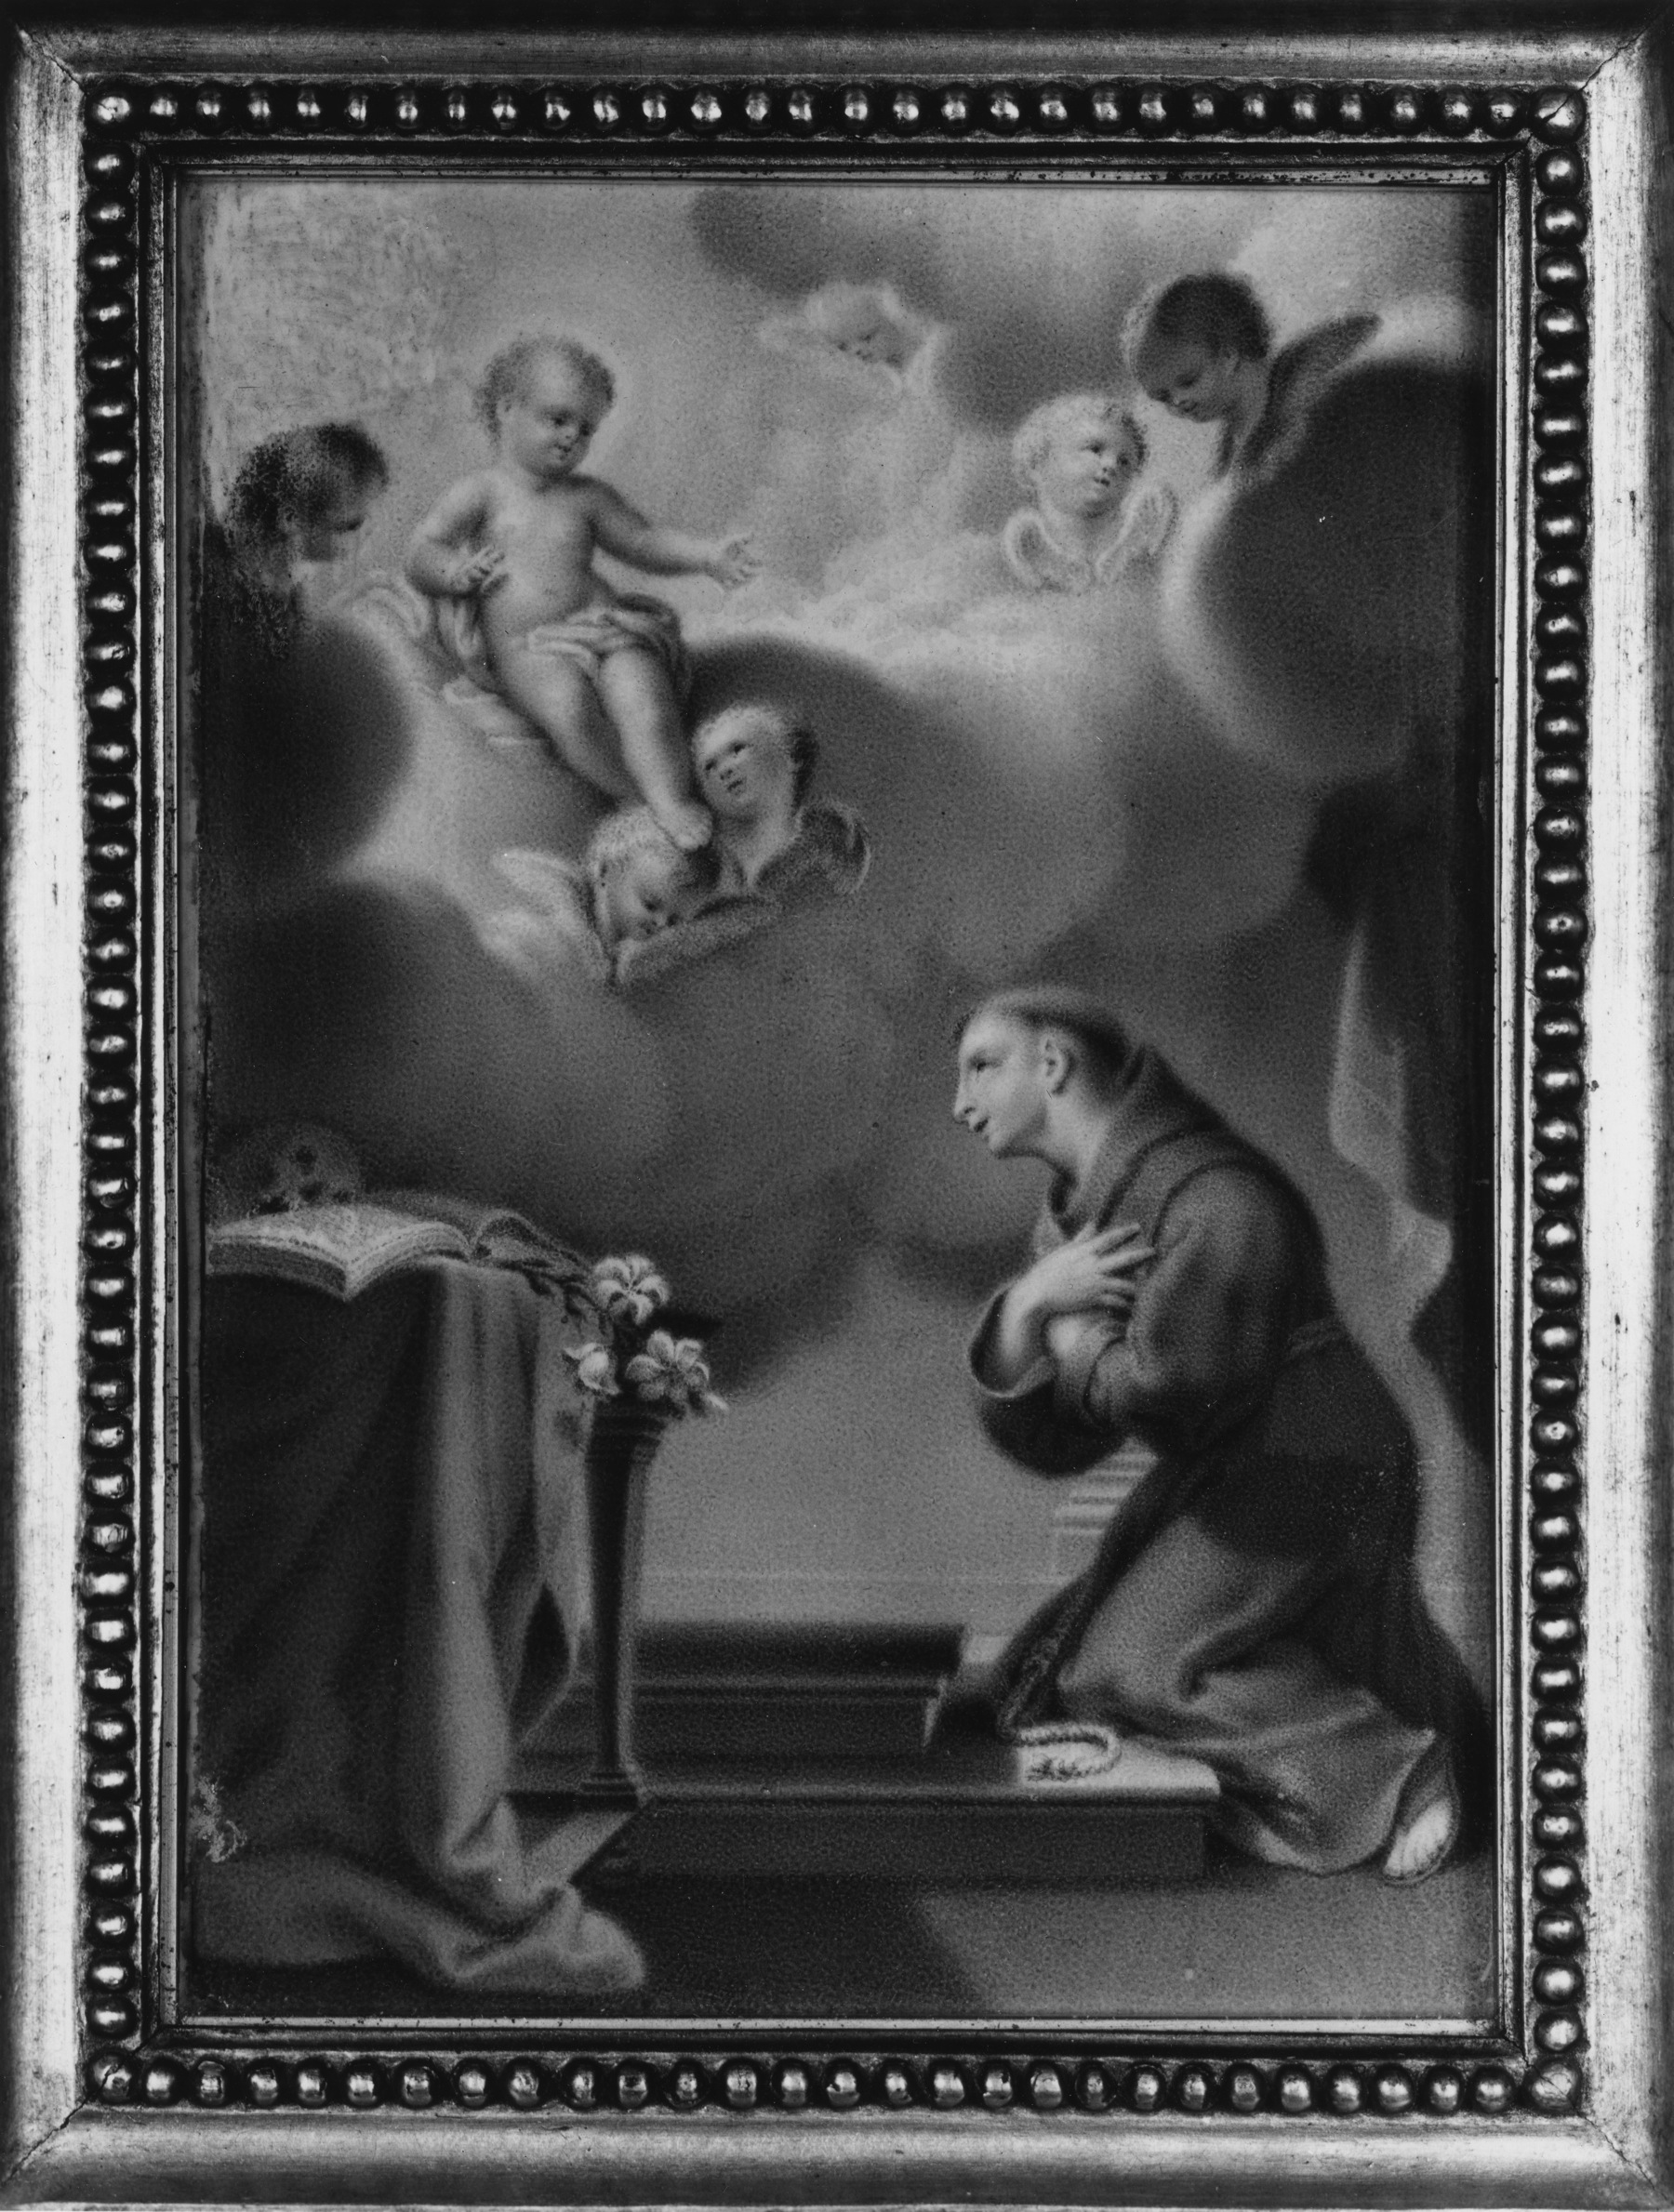 St. Anthony of Padua Kneeling Before a Vision of the Christ Child